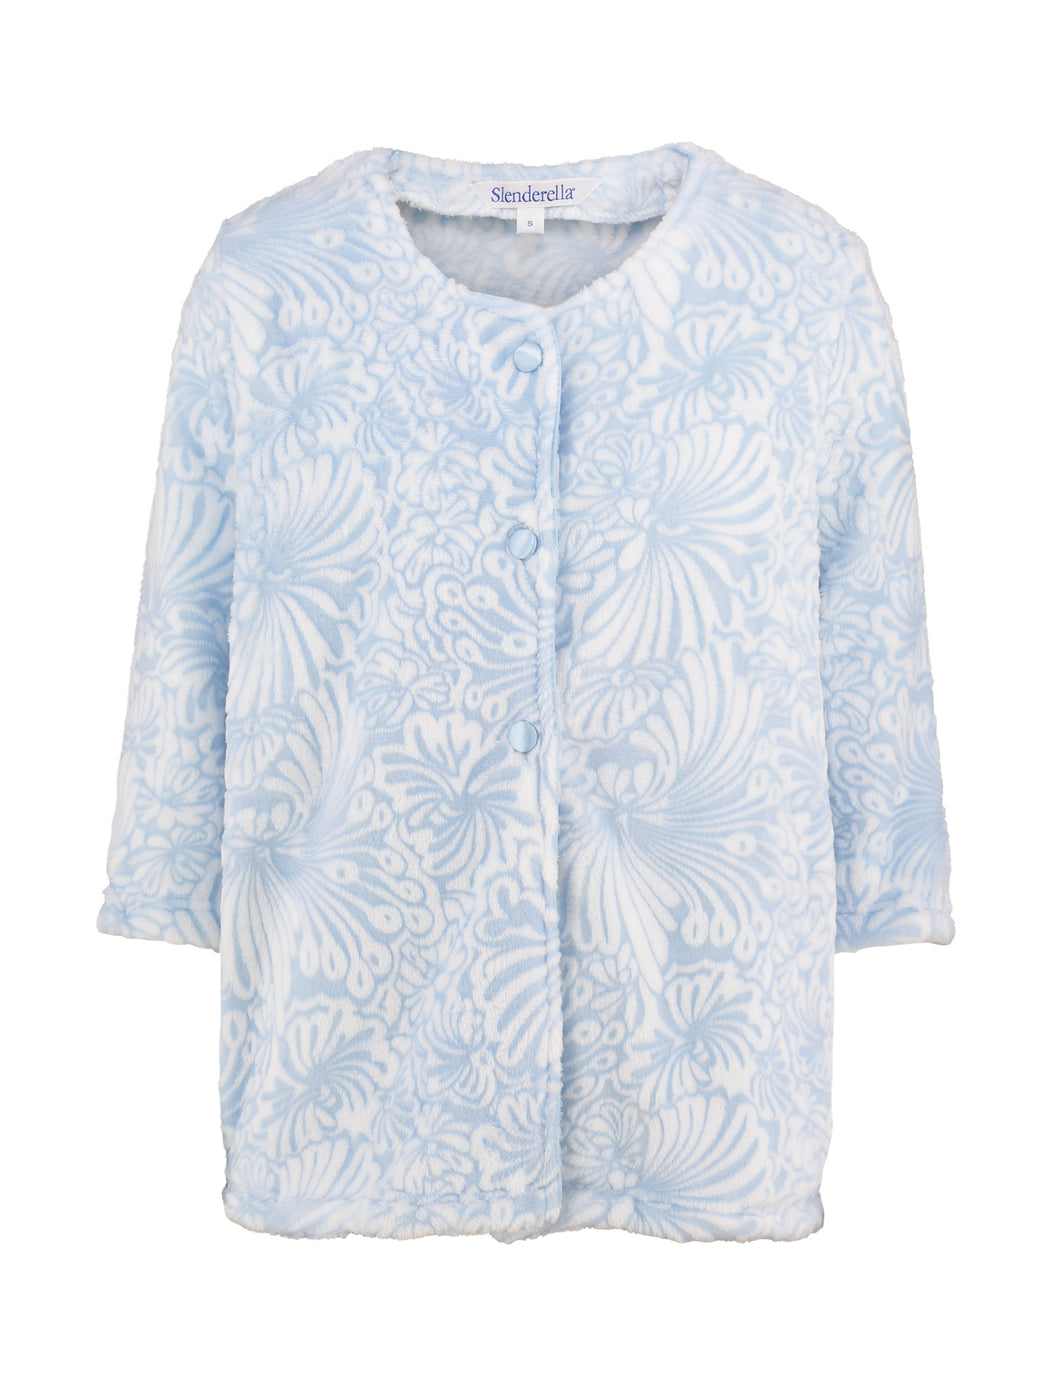 http://images.esellerpro.com/2278/I/138/064/BJ7305-slenderella-ladies-womens-floral-jacquard-bed-jacket-blue.jpg